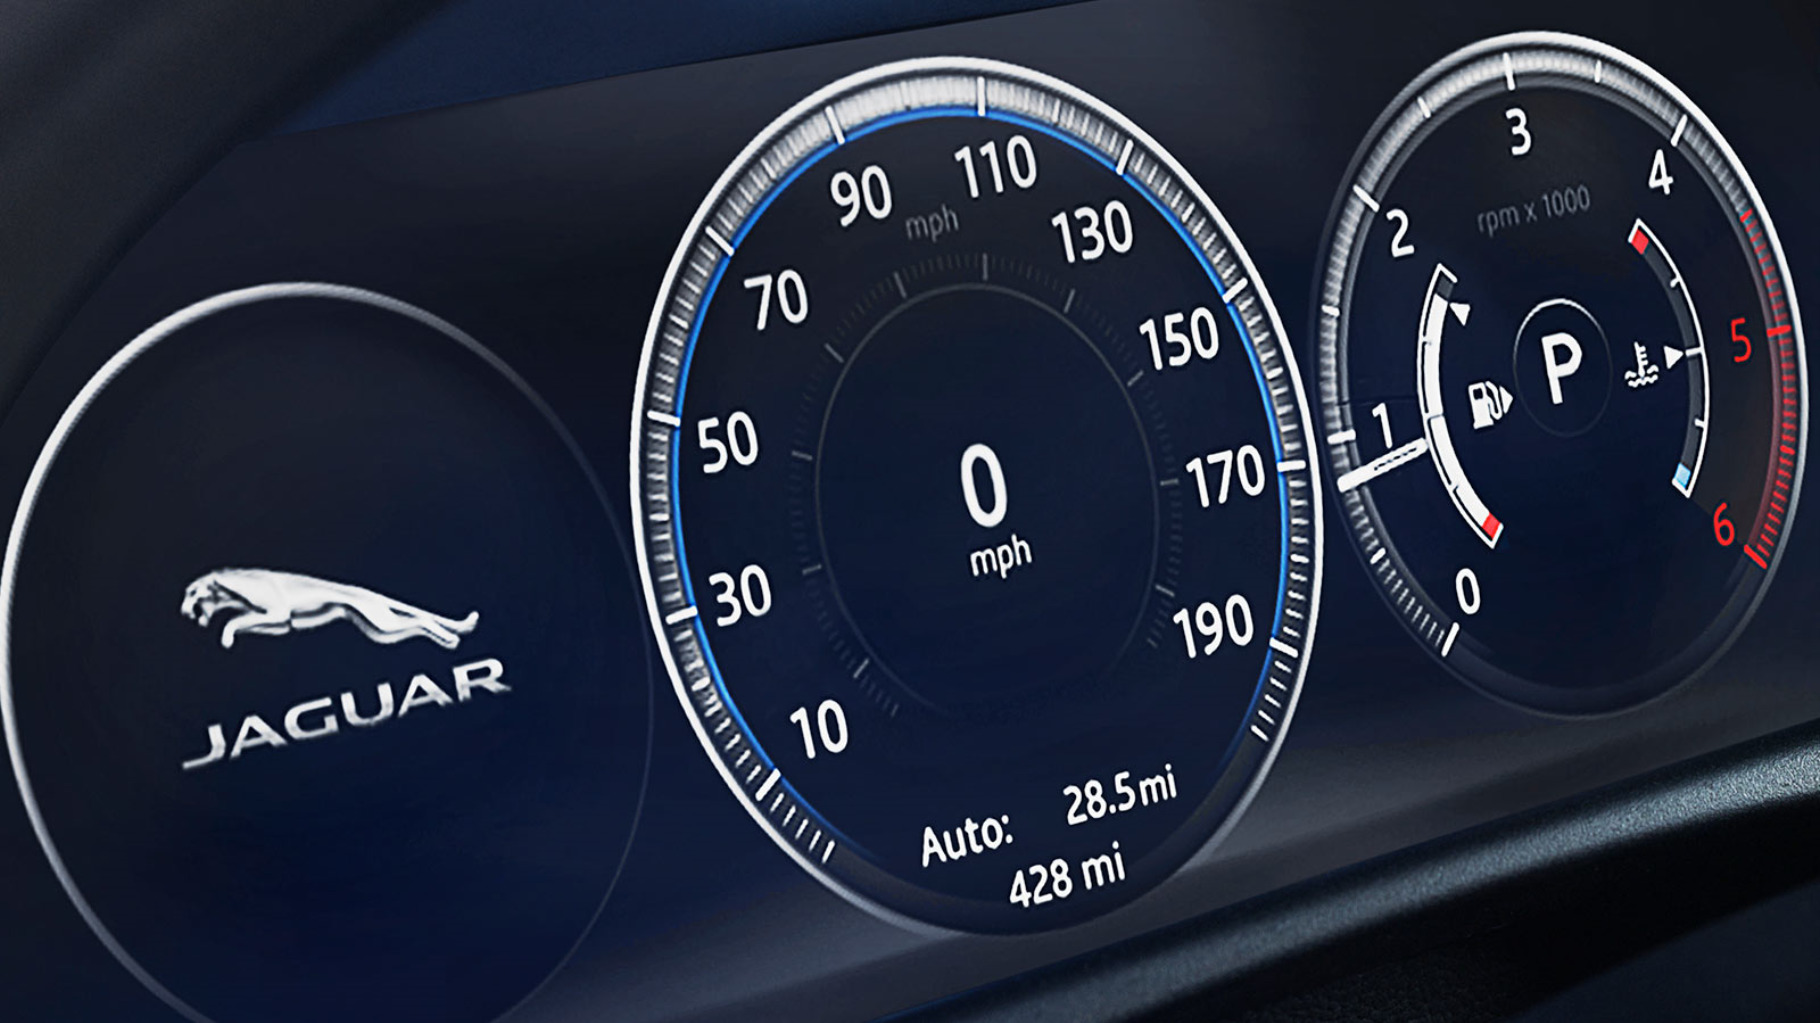 Jaguar XF Interactive driver display.